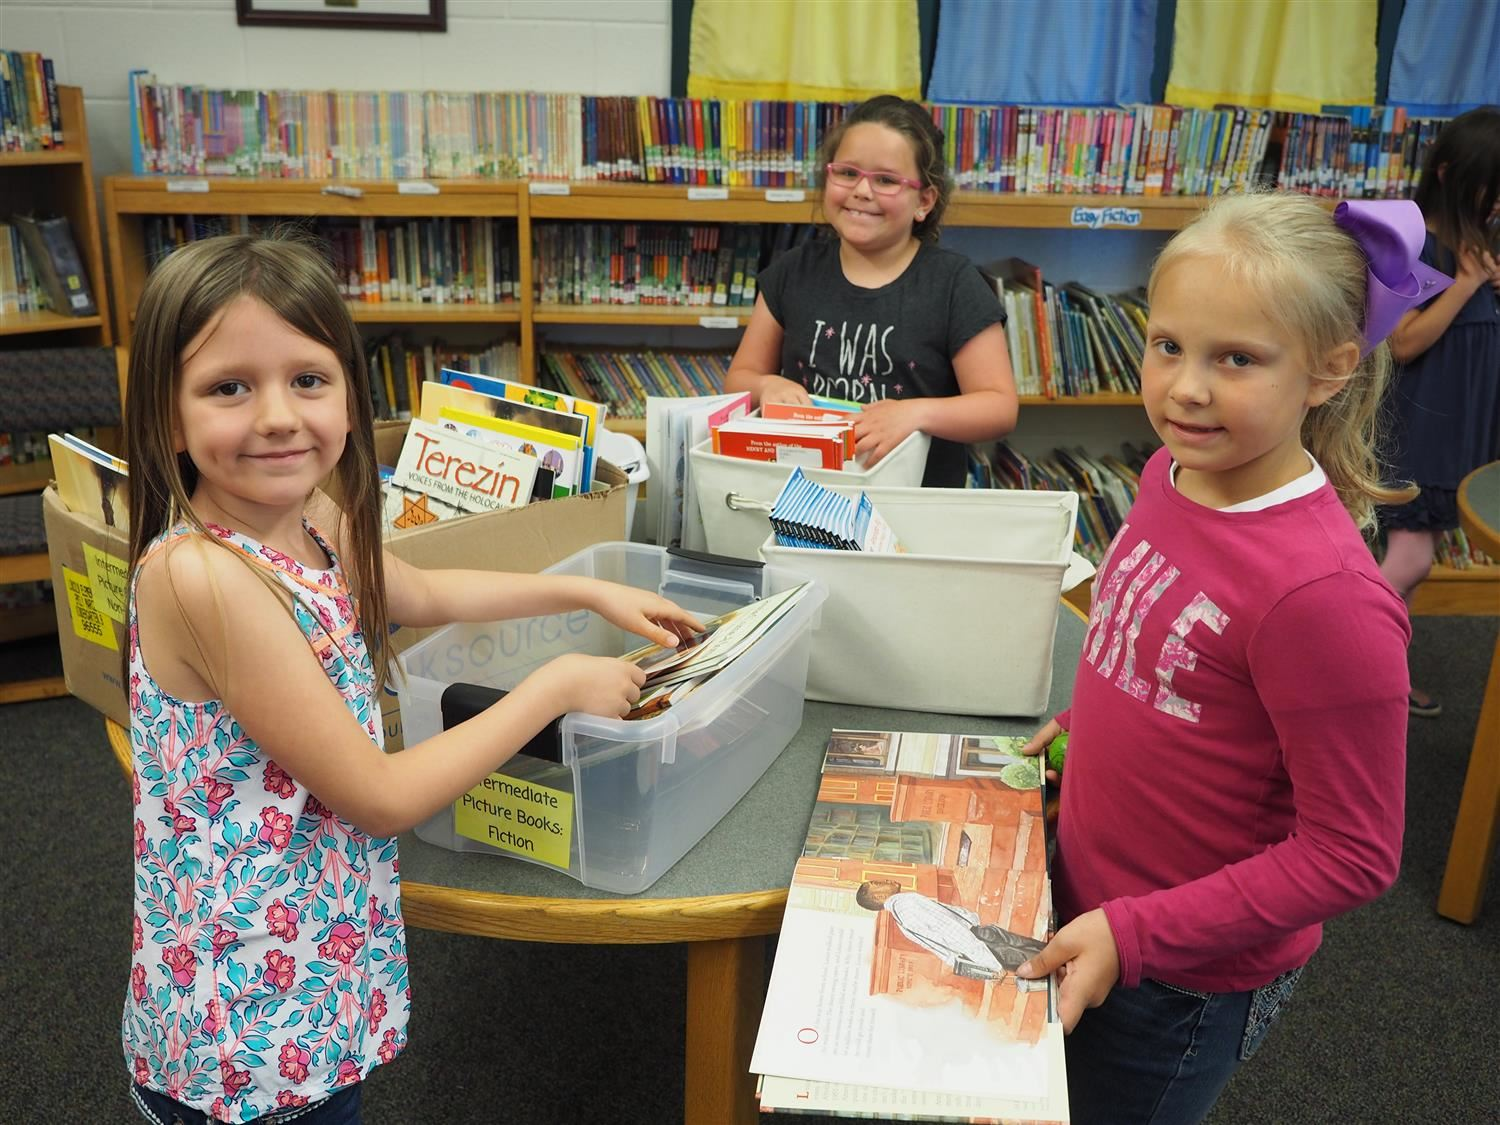 Students select their books for summer reading